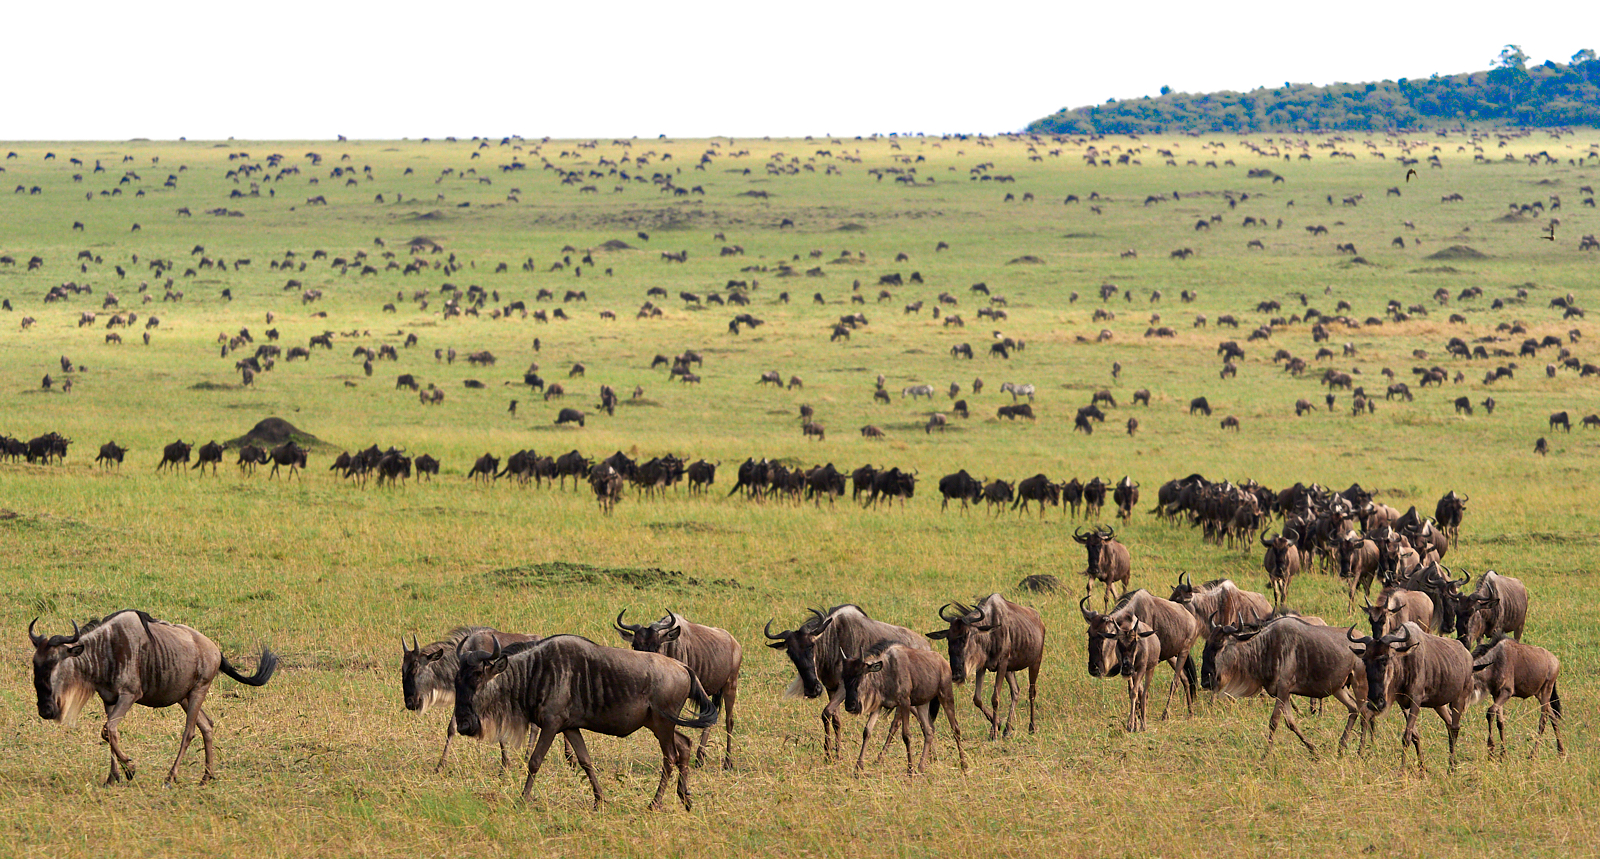 Walking Wildebeest, as far as the eye can see.